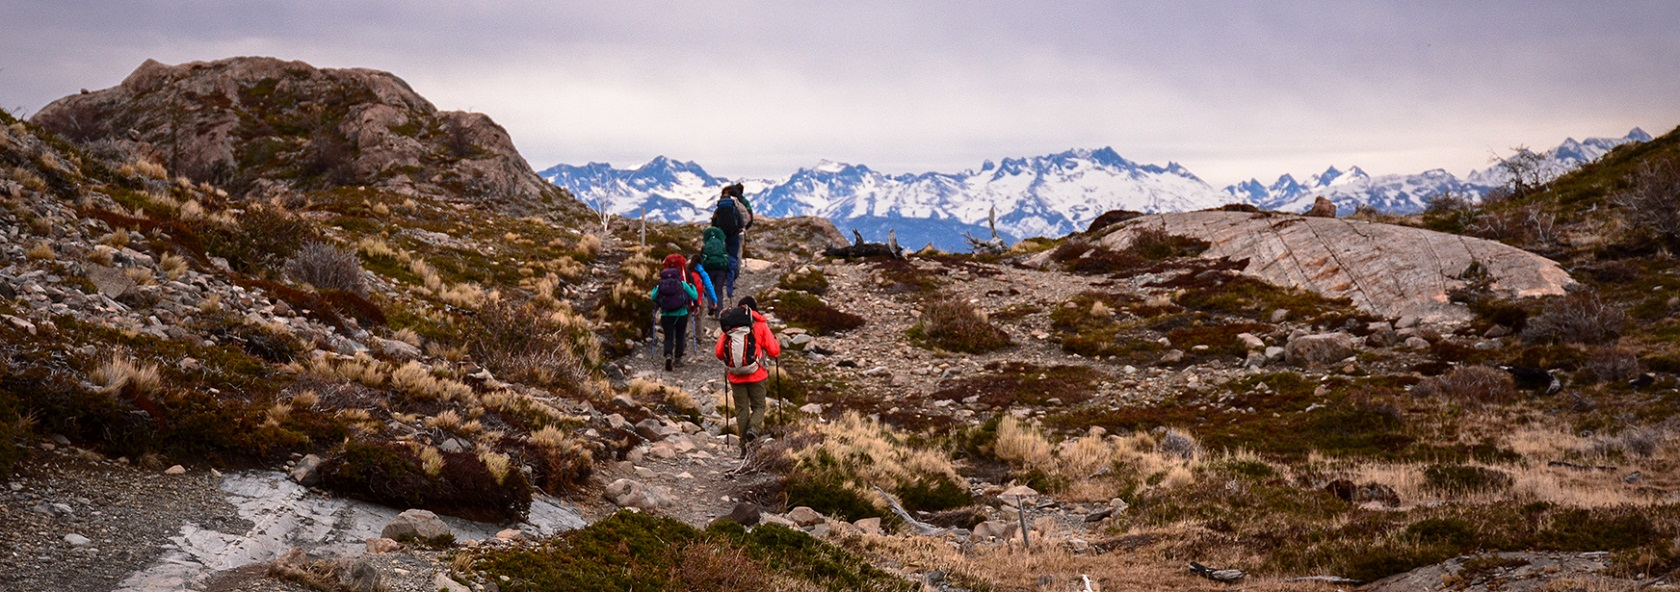 Patagonia Chile Adventure Travel